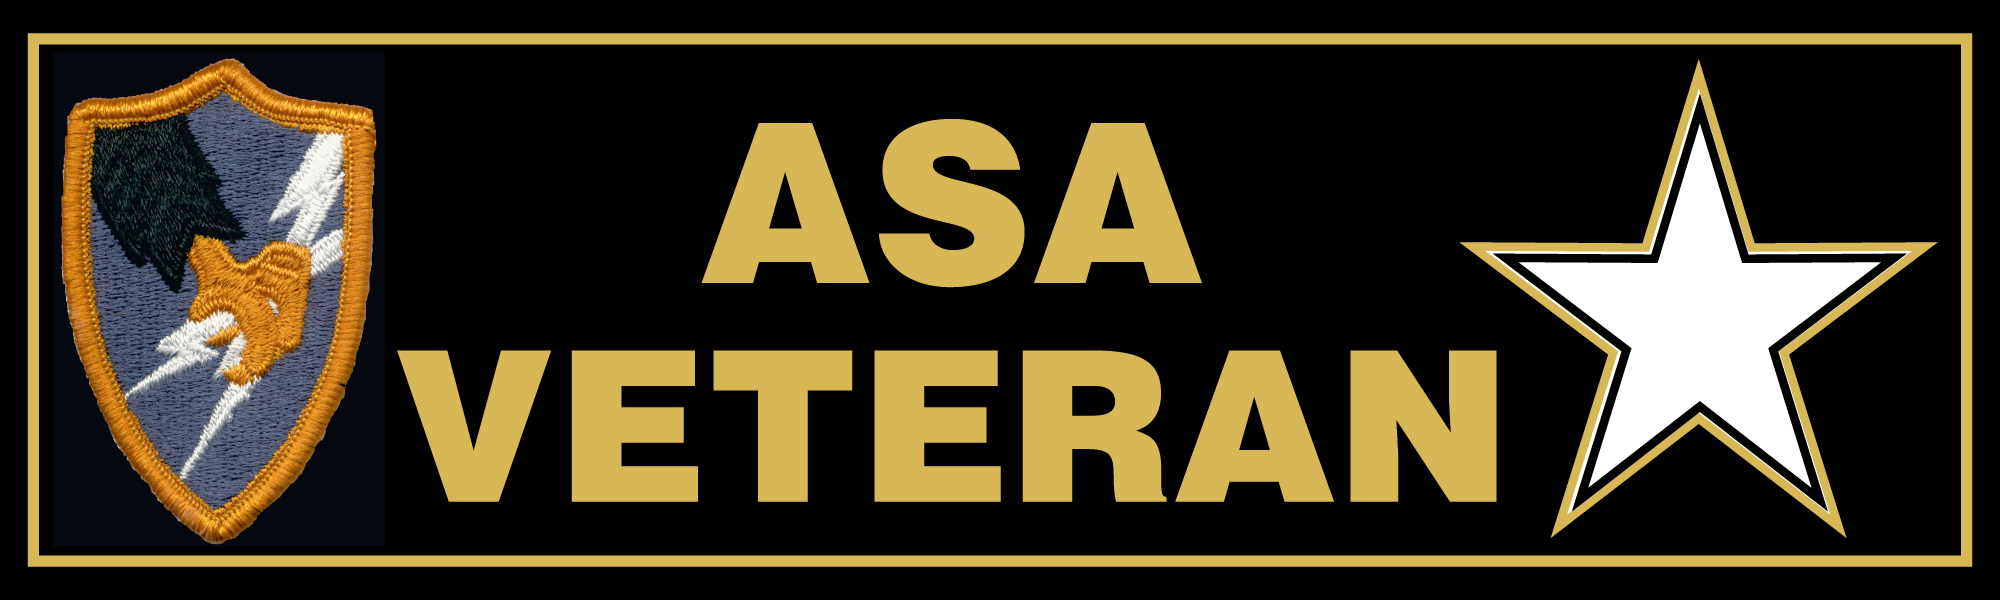 ASA VETERAN